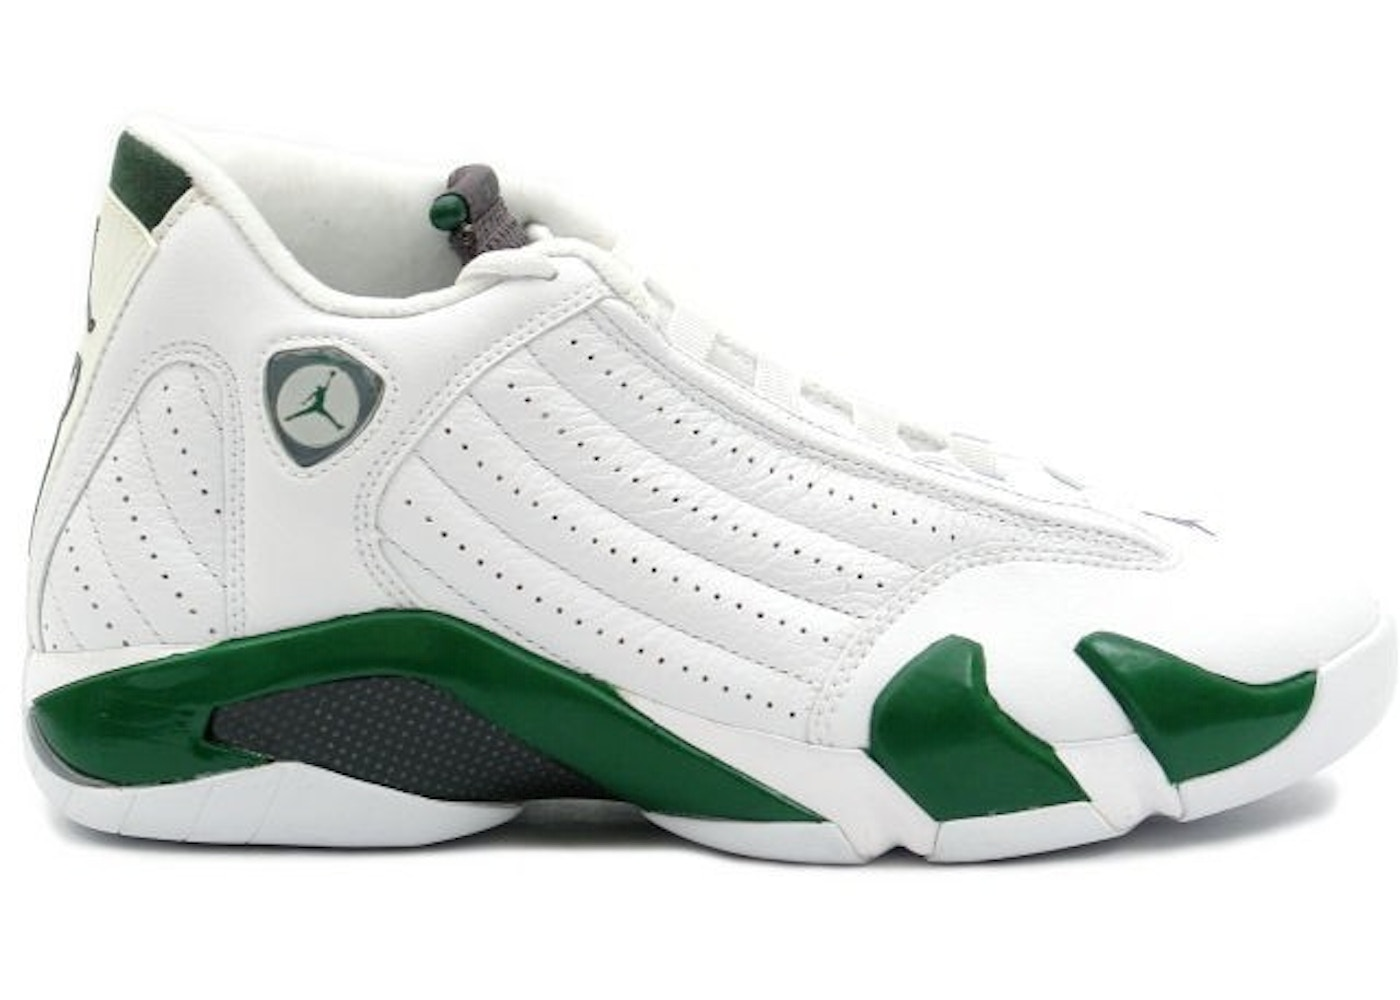 bec1ddc6ac36f1 Jordan 14 Retro White Forest Green - 311832-131